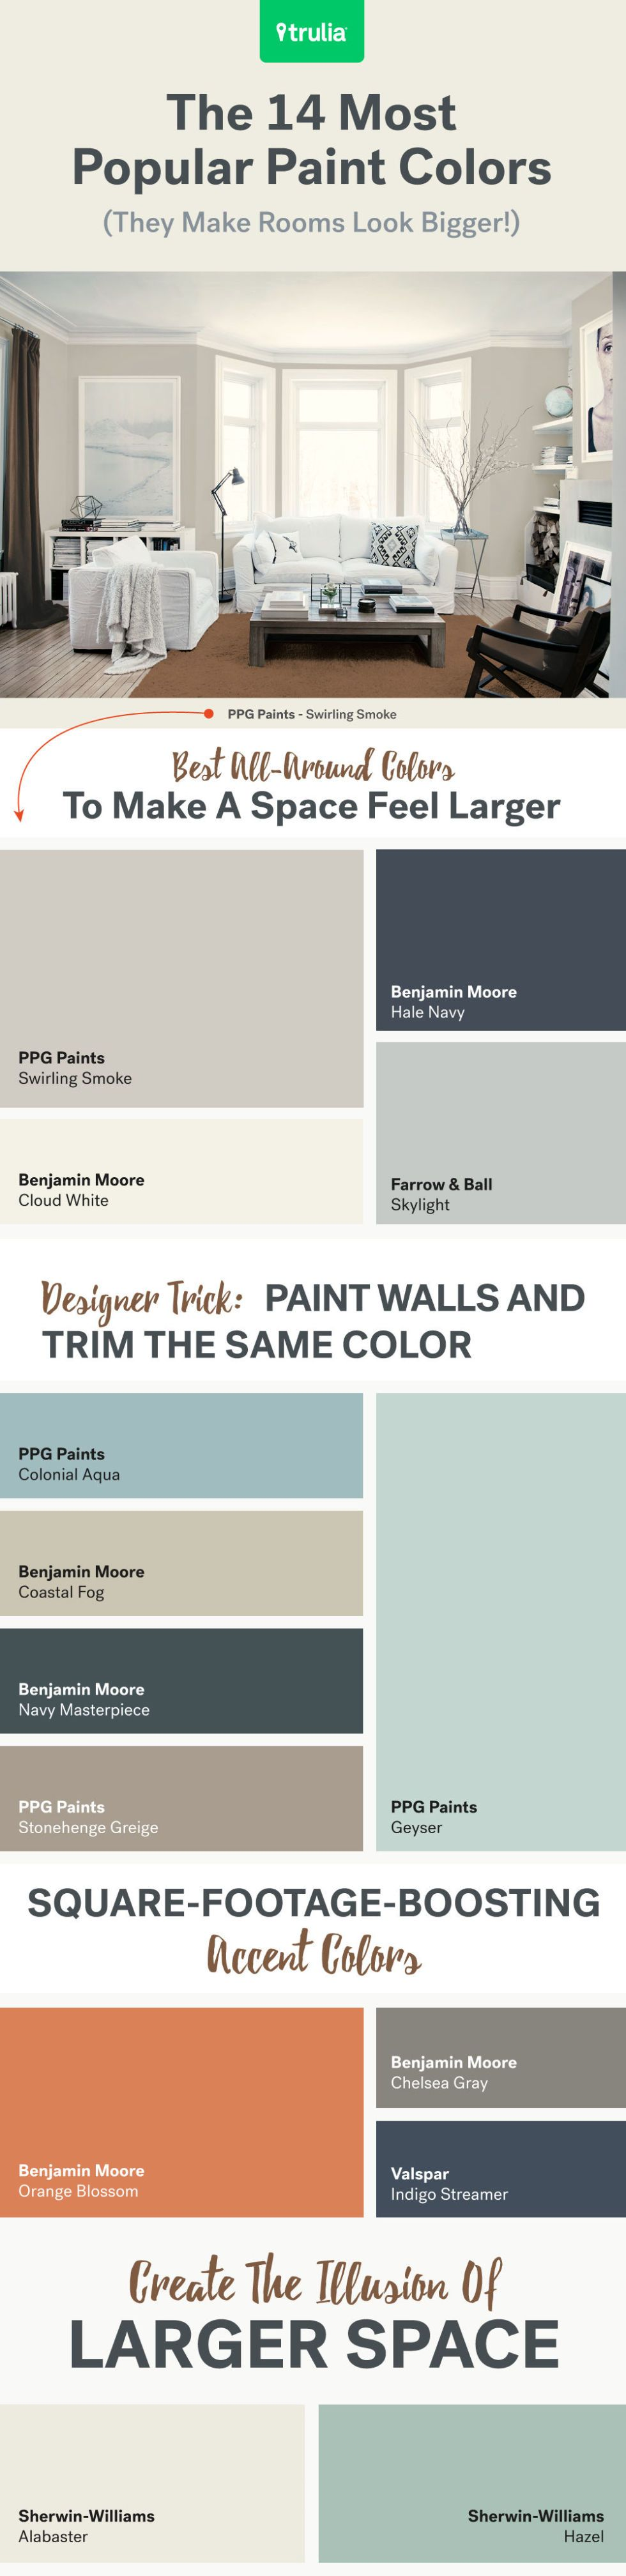 image Paint Colors For Small Rooms